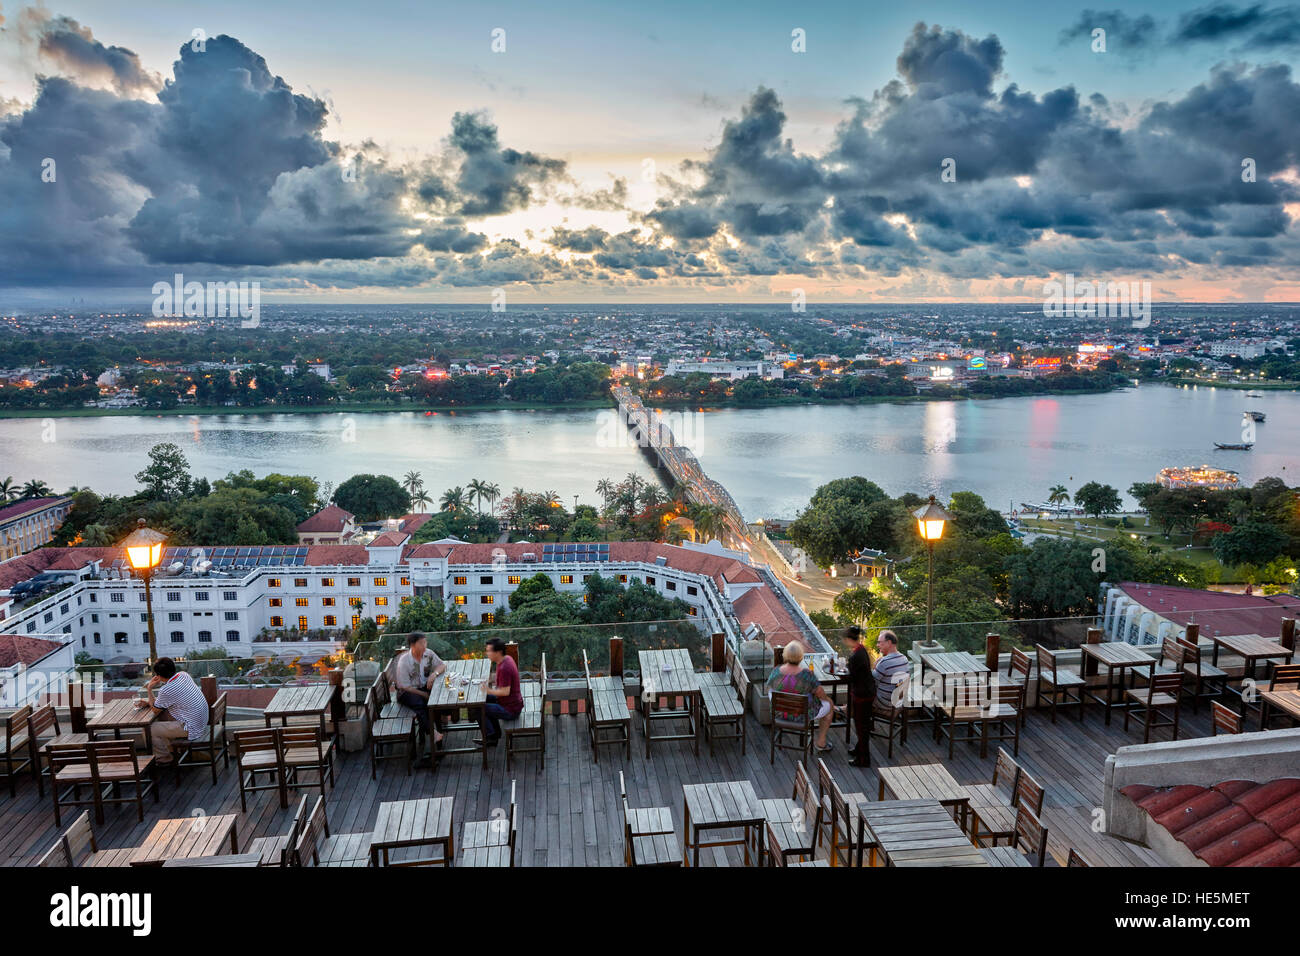 Elevated city view from The Imperial Hotel rooftop bar. Hue, Vietnam. - Stock Image